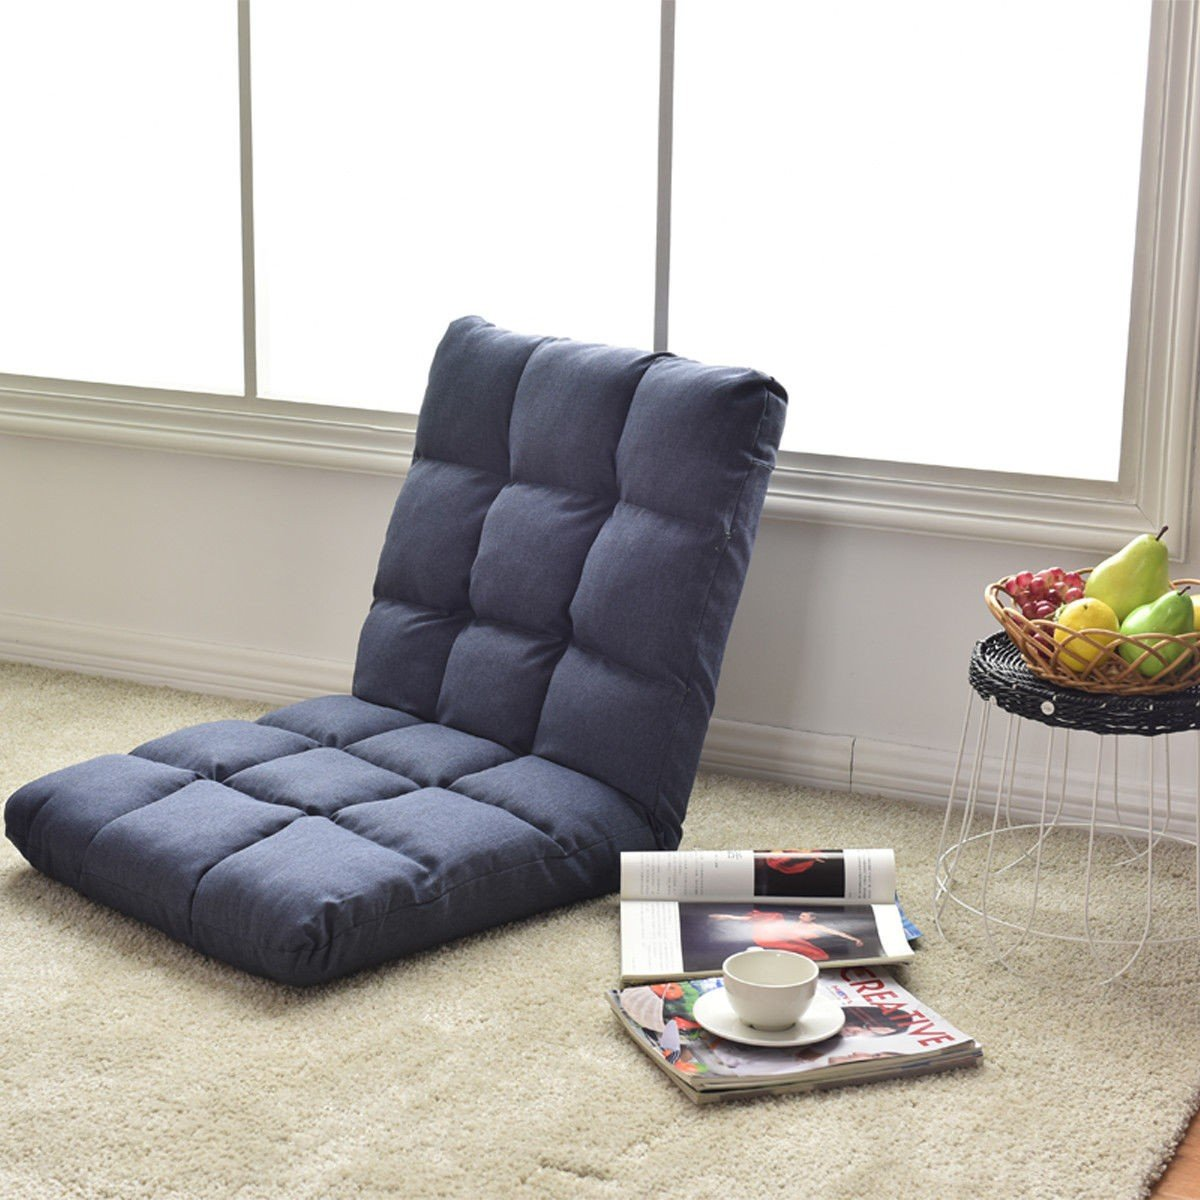 14-Position Adjustable Cushioned Floor Gaming Sofa Chair ...